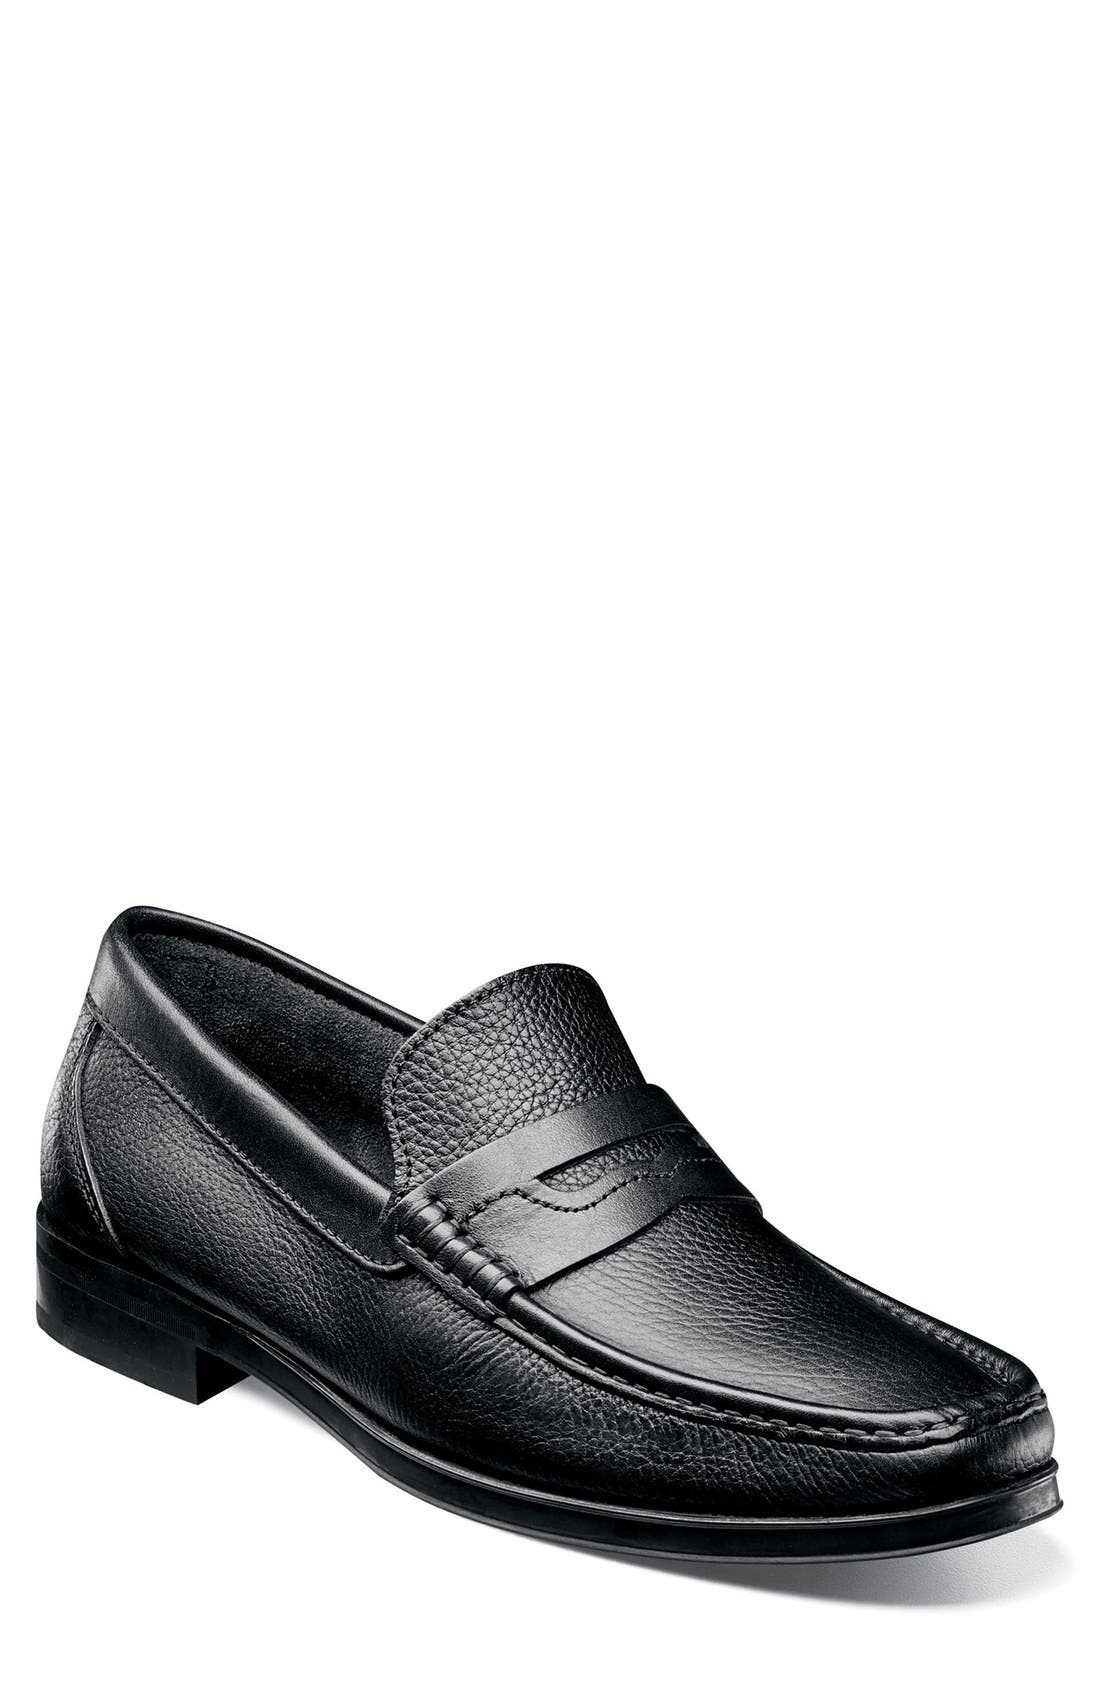 Westbrook Penny Loafer,                         Main,                         color,